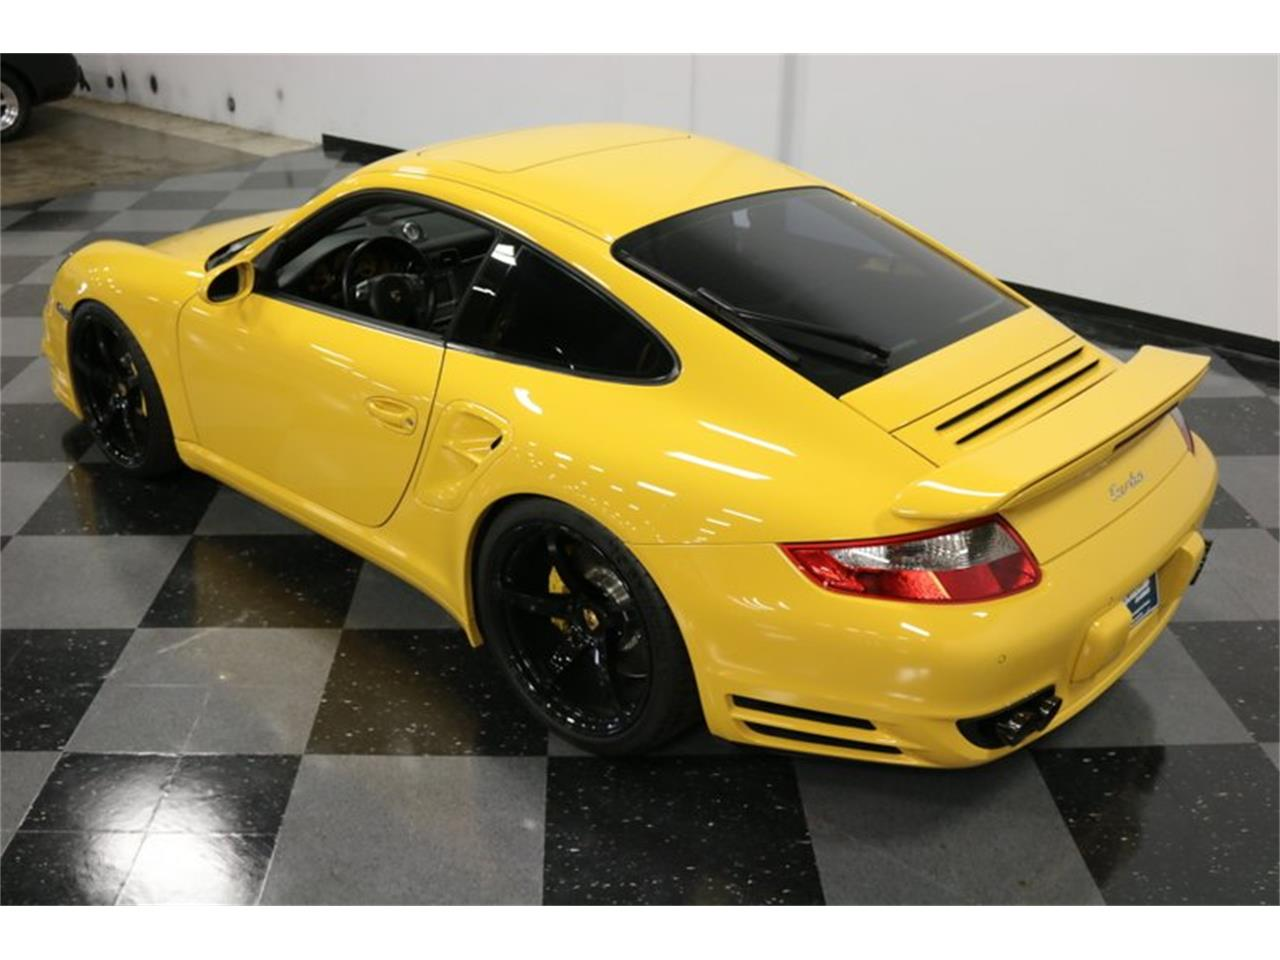 2007 Porsche 911 for sale in Ft Worth, TX – photo 79